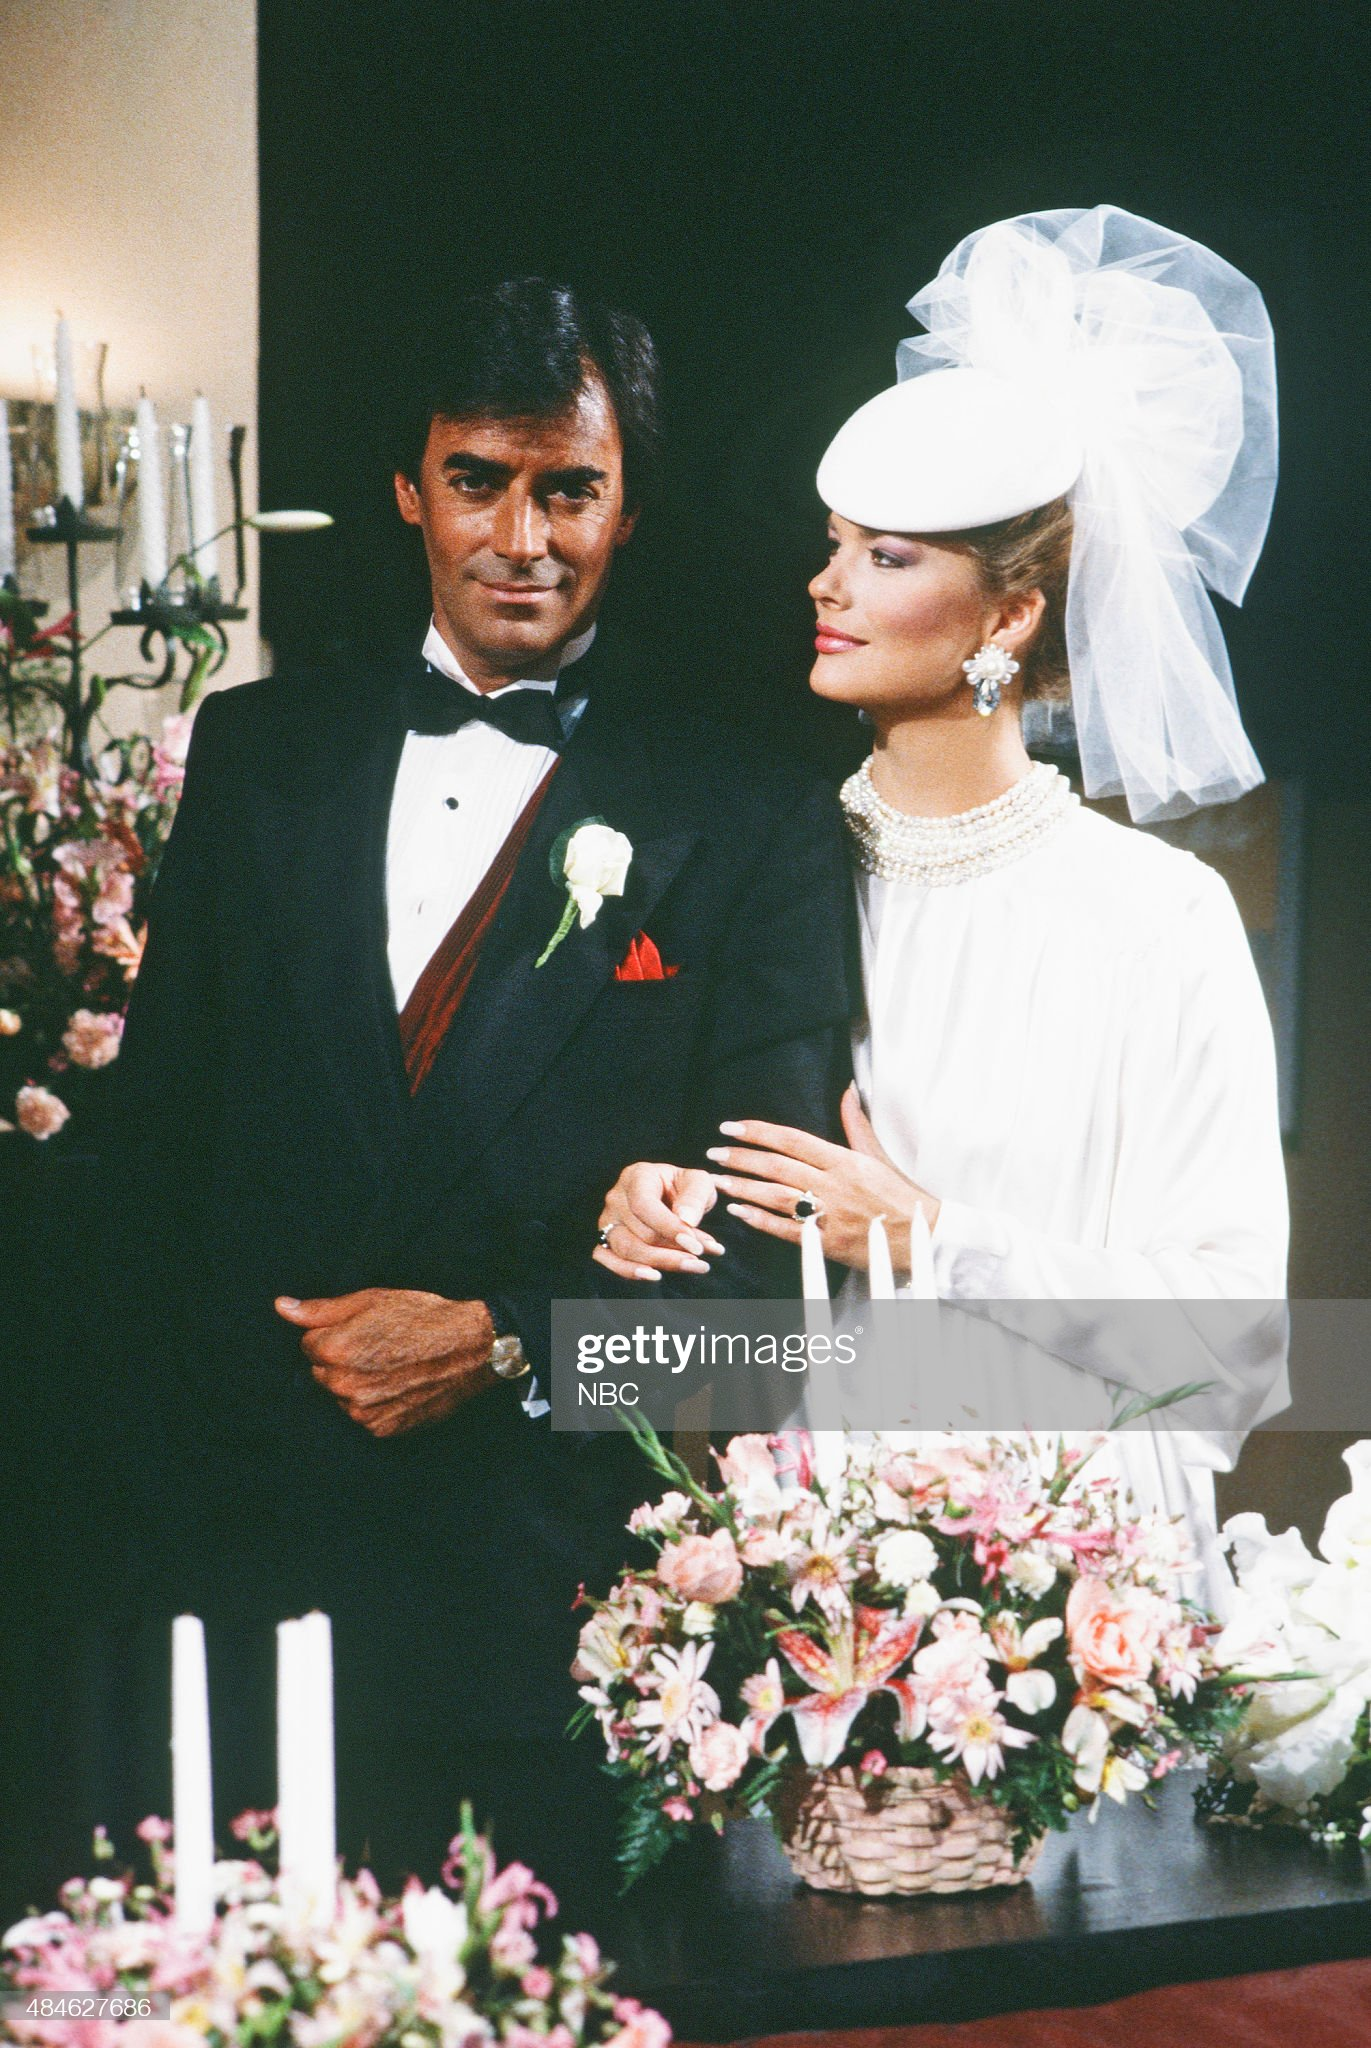 tony-dimera-anna-brady-wedding-pictured-thaao-penghlis-as-tony-dimera-picture-id484627686